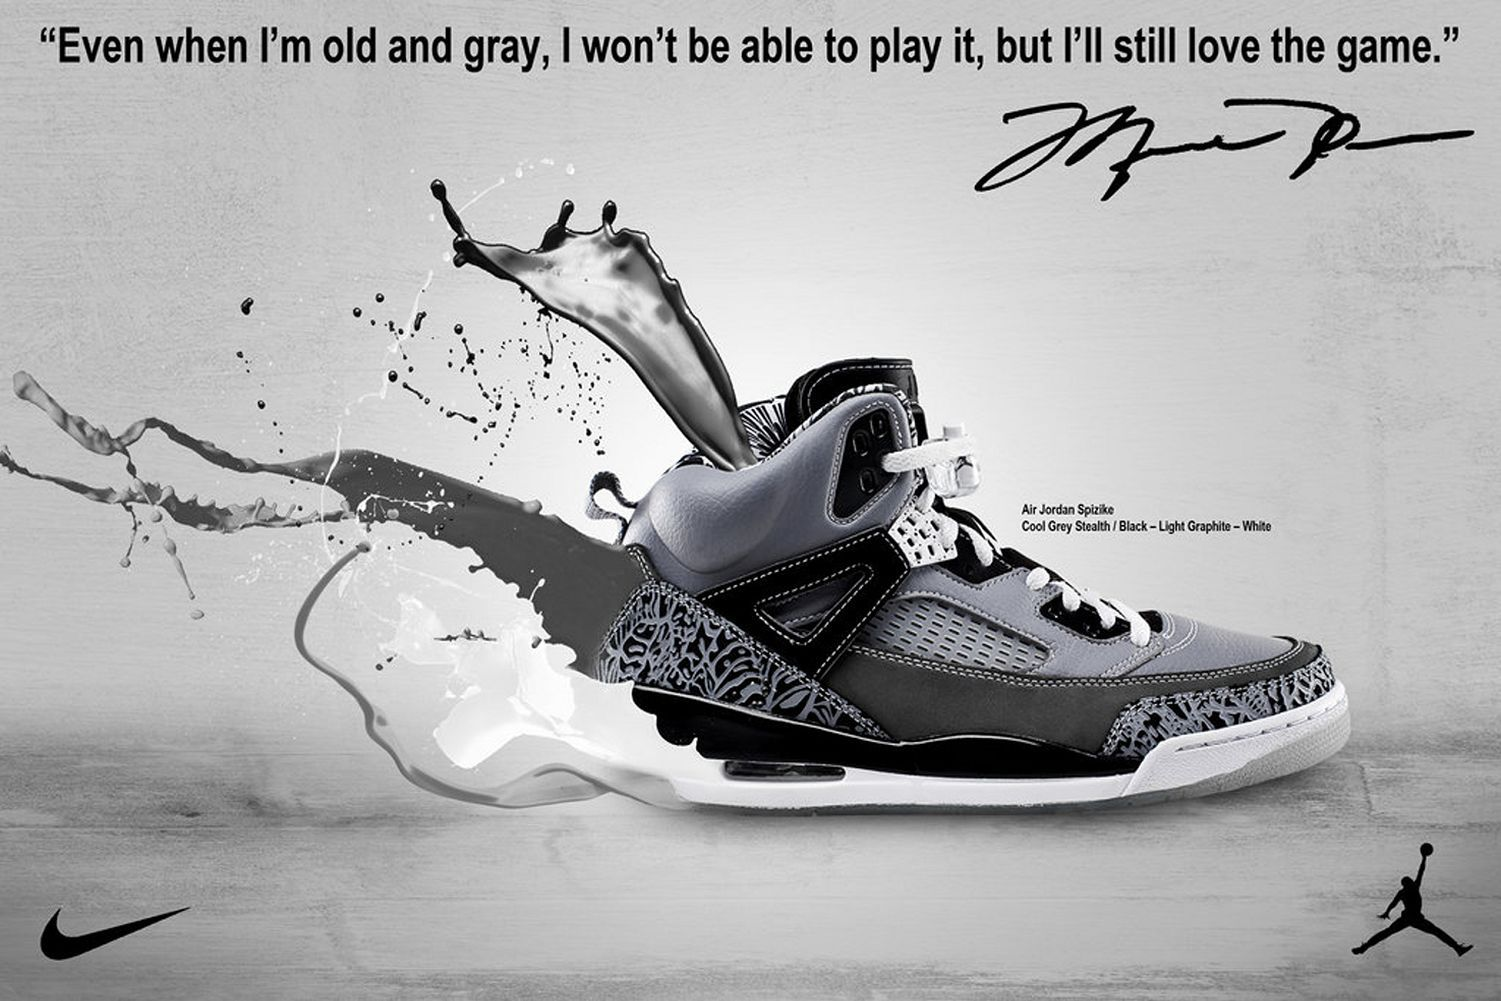 Just a little advertisement poster I created using Adobe Photoshop. Im just  a big collector of jordan brand shoes.